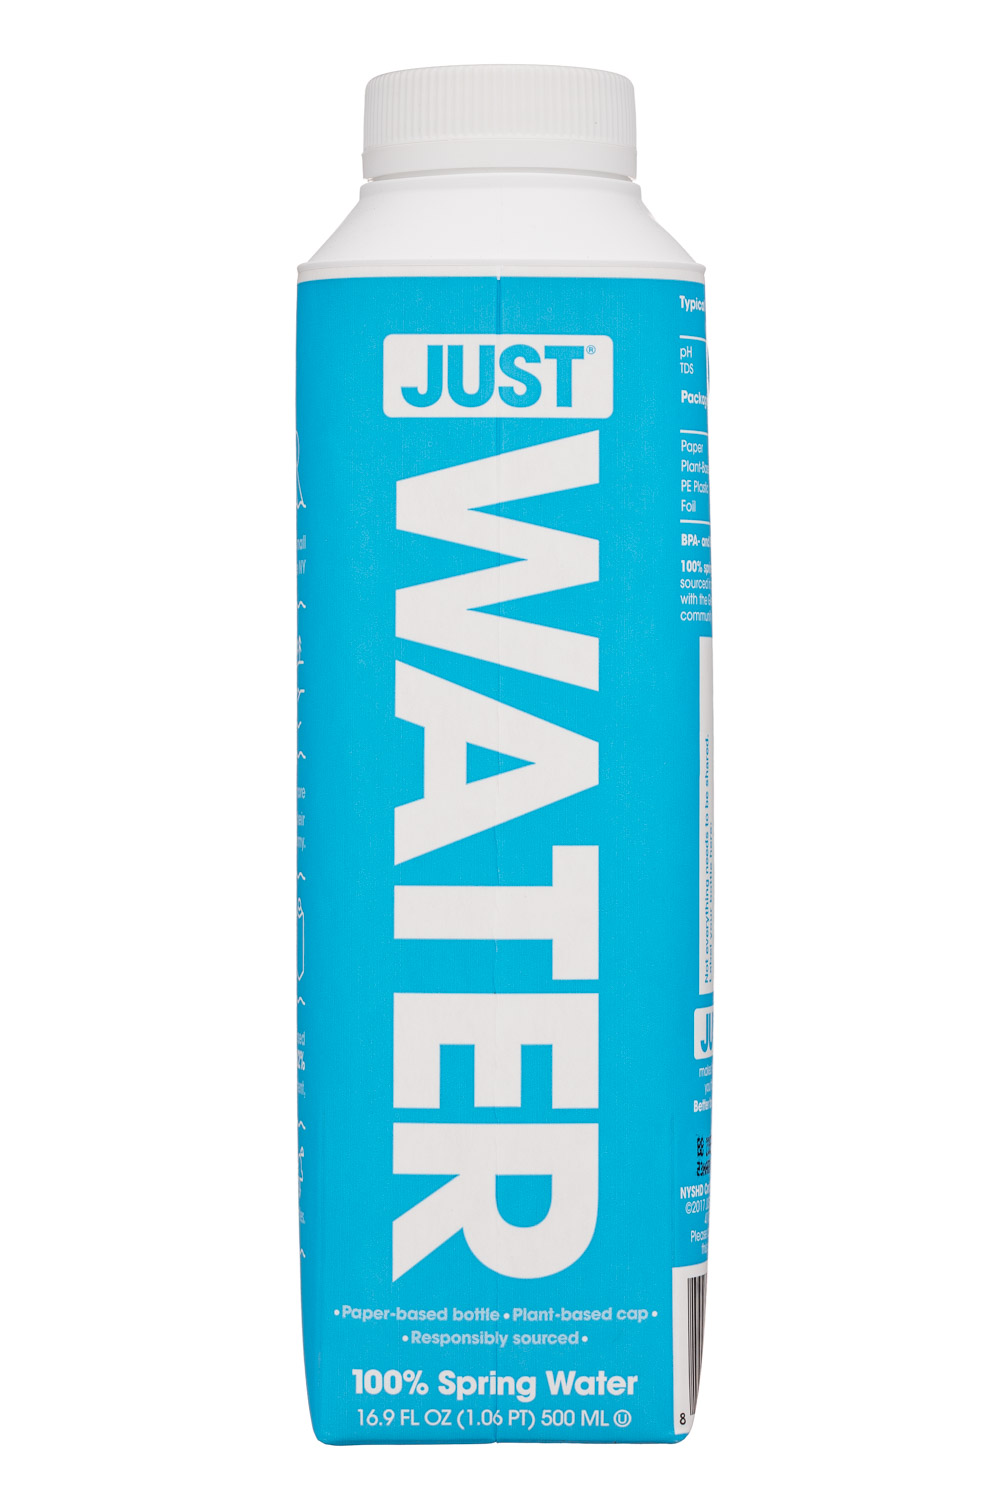 Just Water: JustWater-17oz-Front